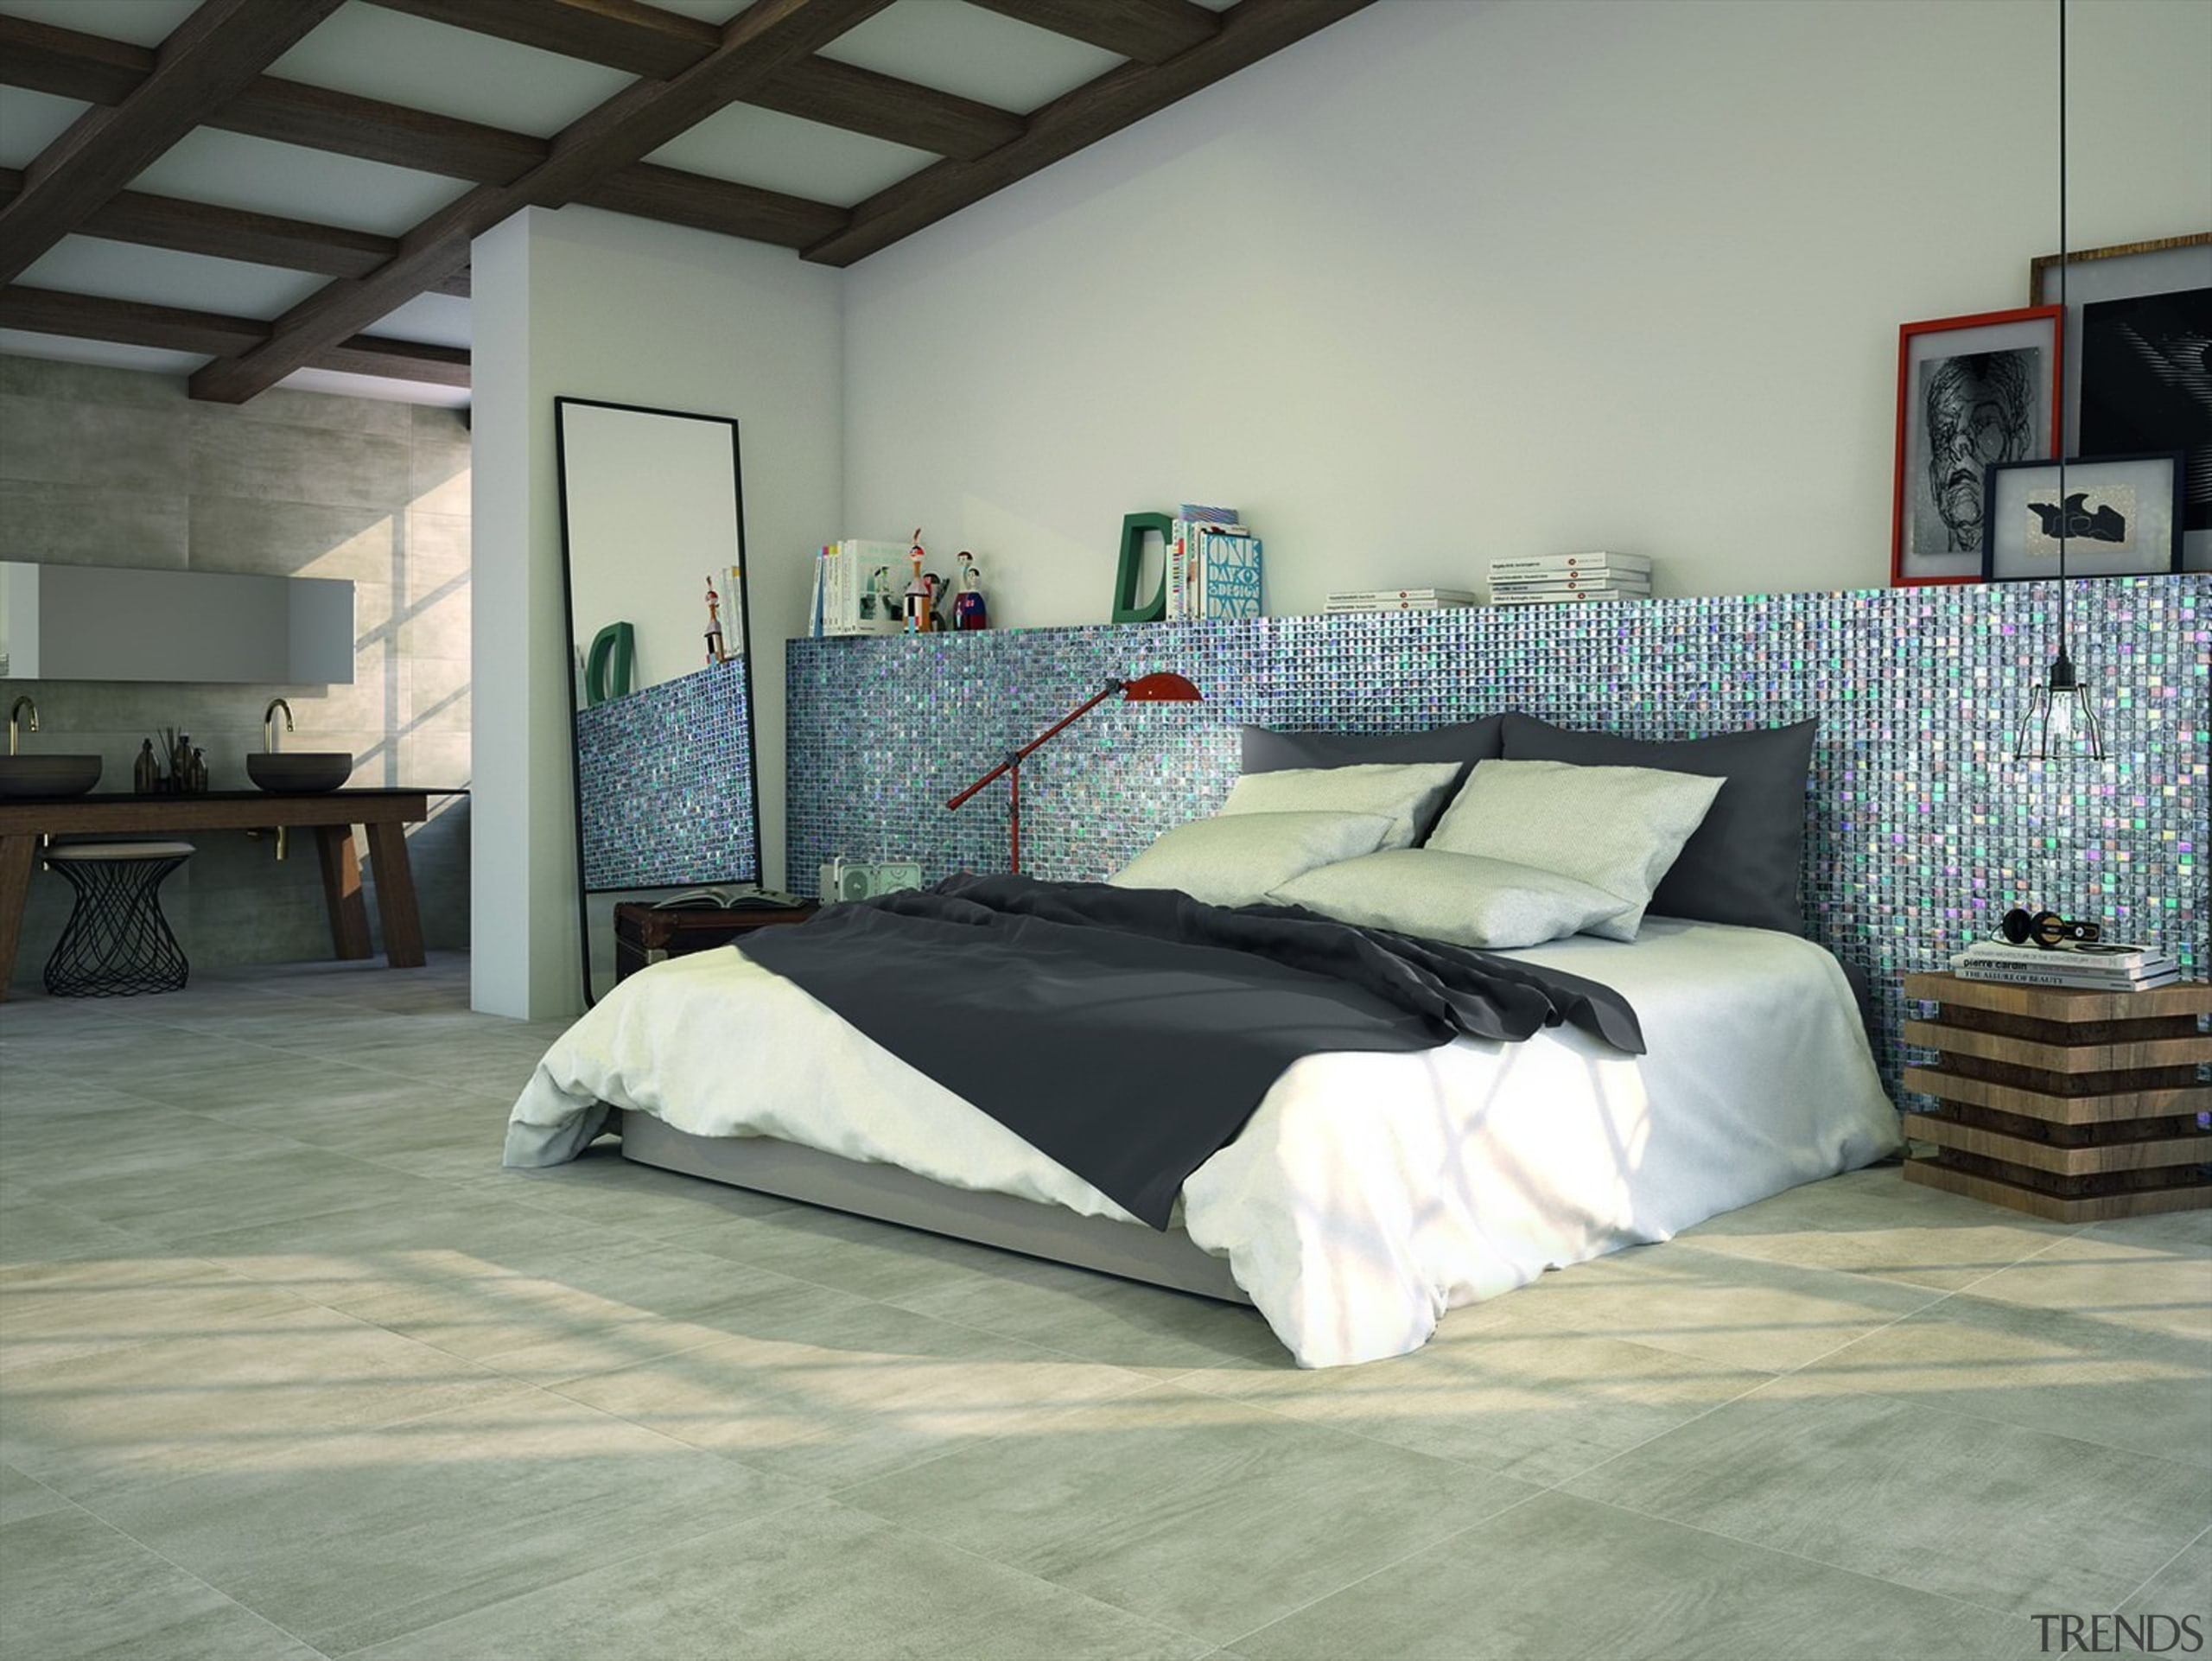 Mosaic tiles are the perfect addition to any bed, bed frame, bed sheet, bedroom, floor, flooring, furniture, interior design, mattress, room, wall, wood, gray